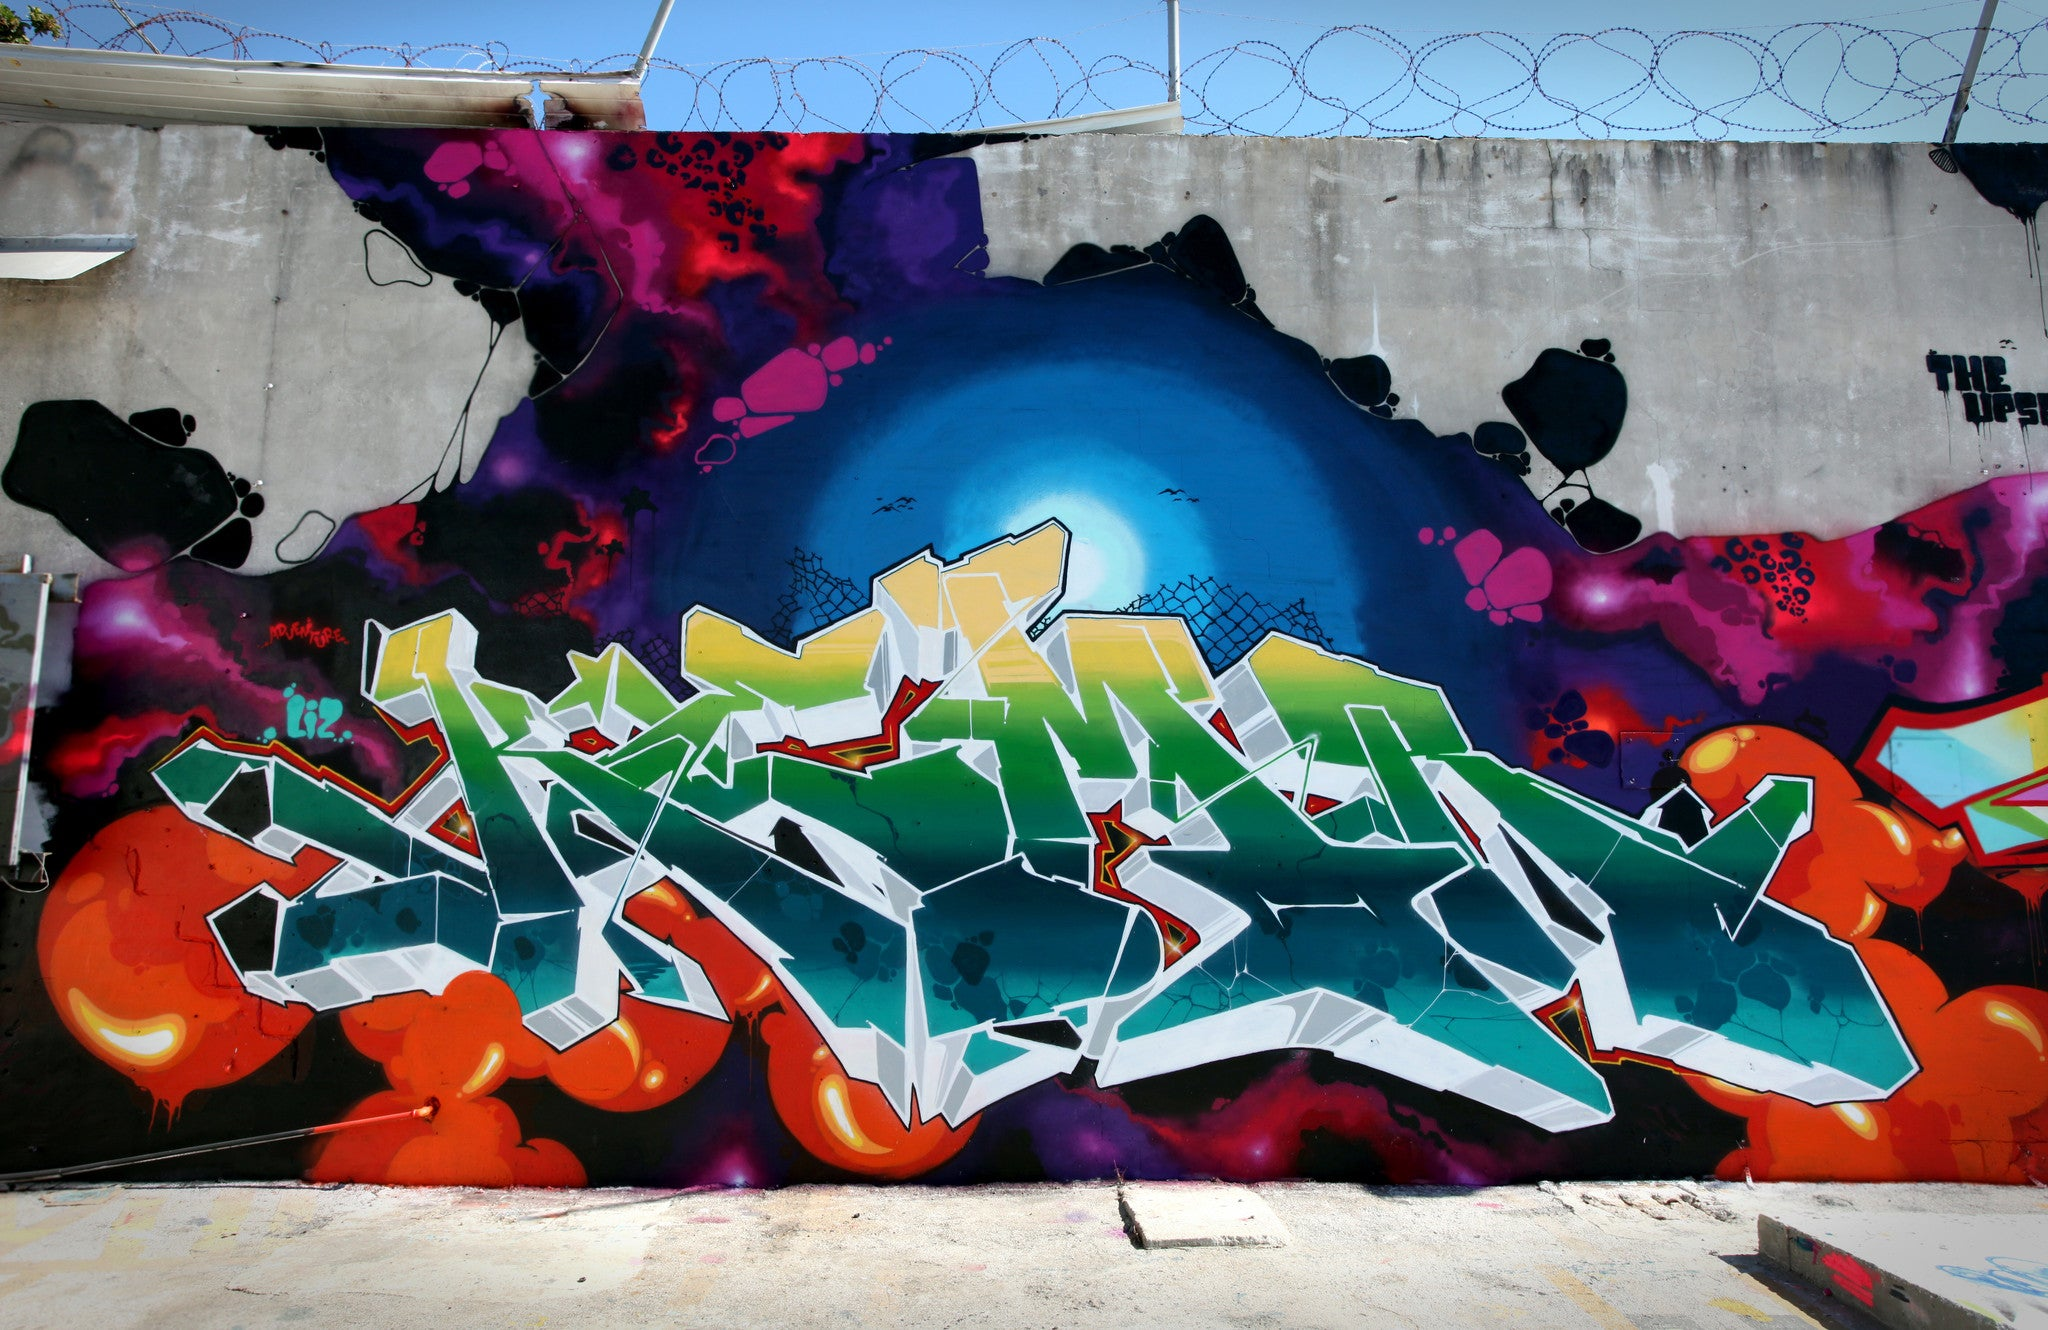 graffiti art piece wall kems kemer kem5 all chrome bandit1sm